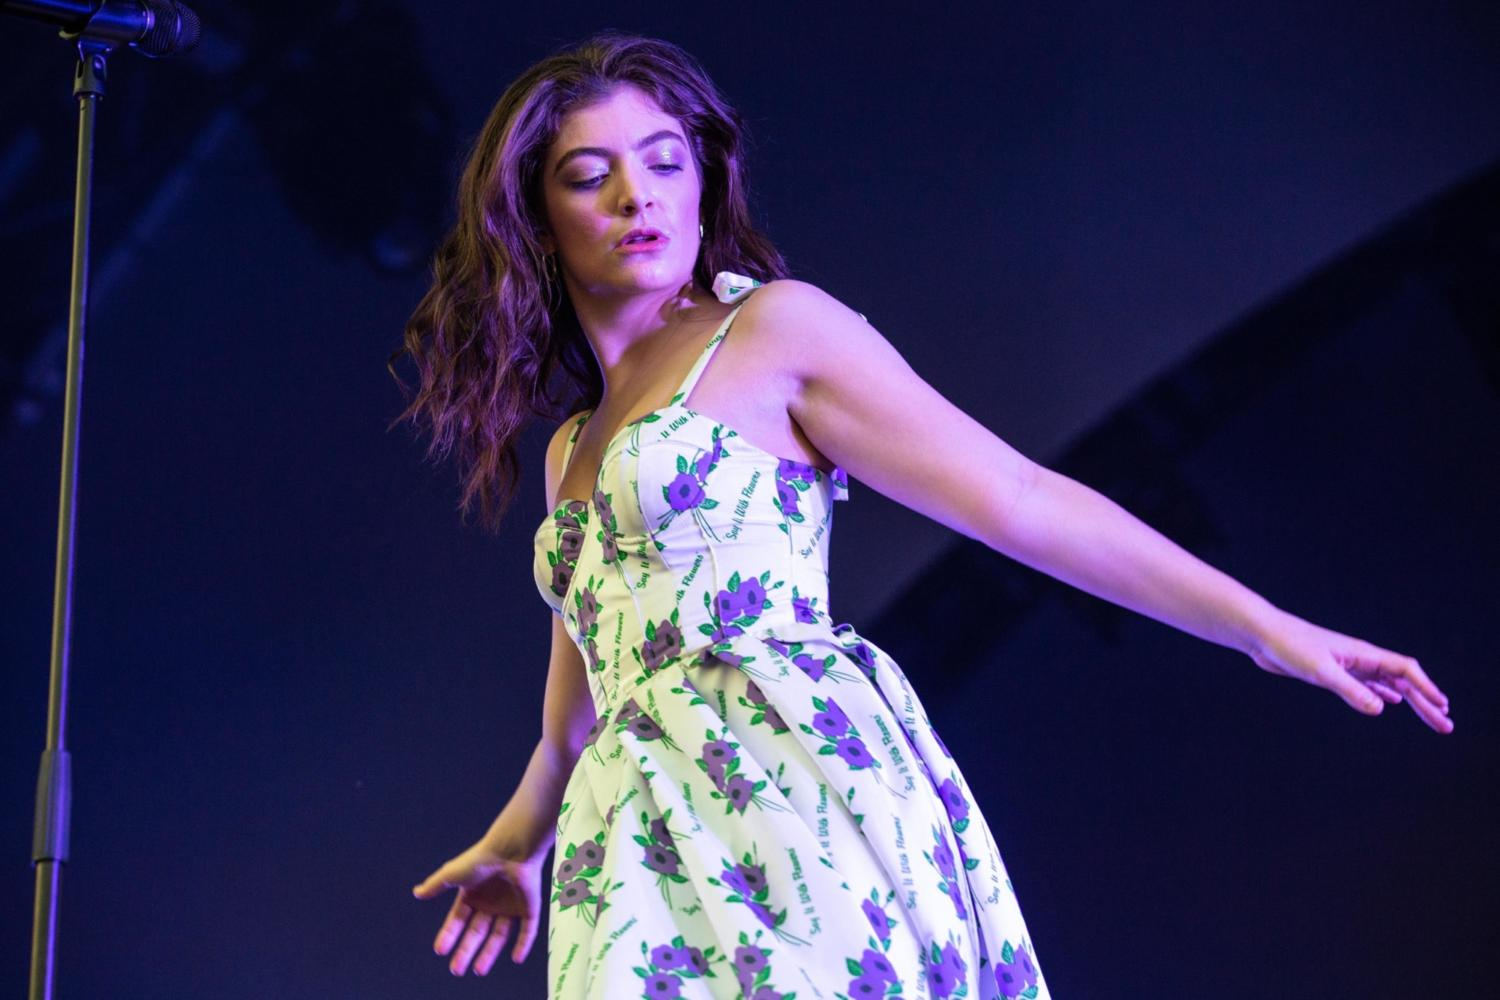 Lorde is releasing a new photo book